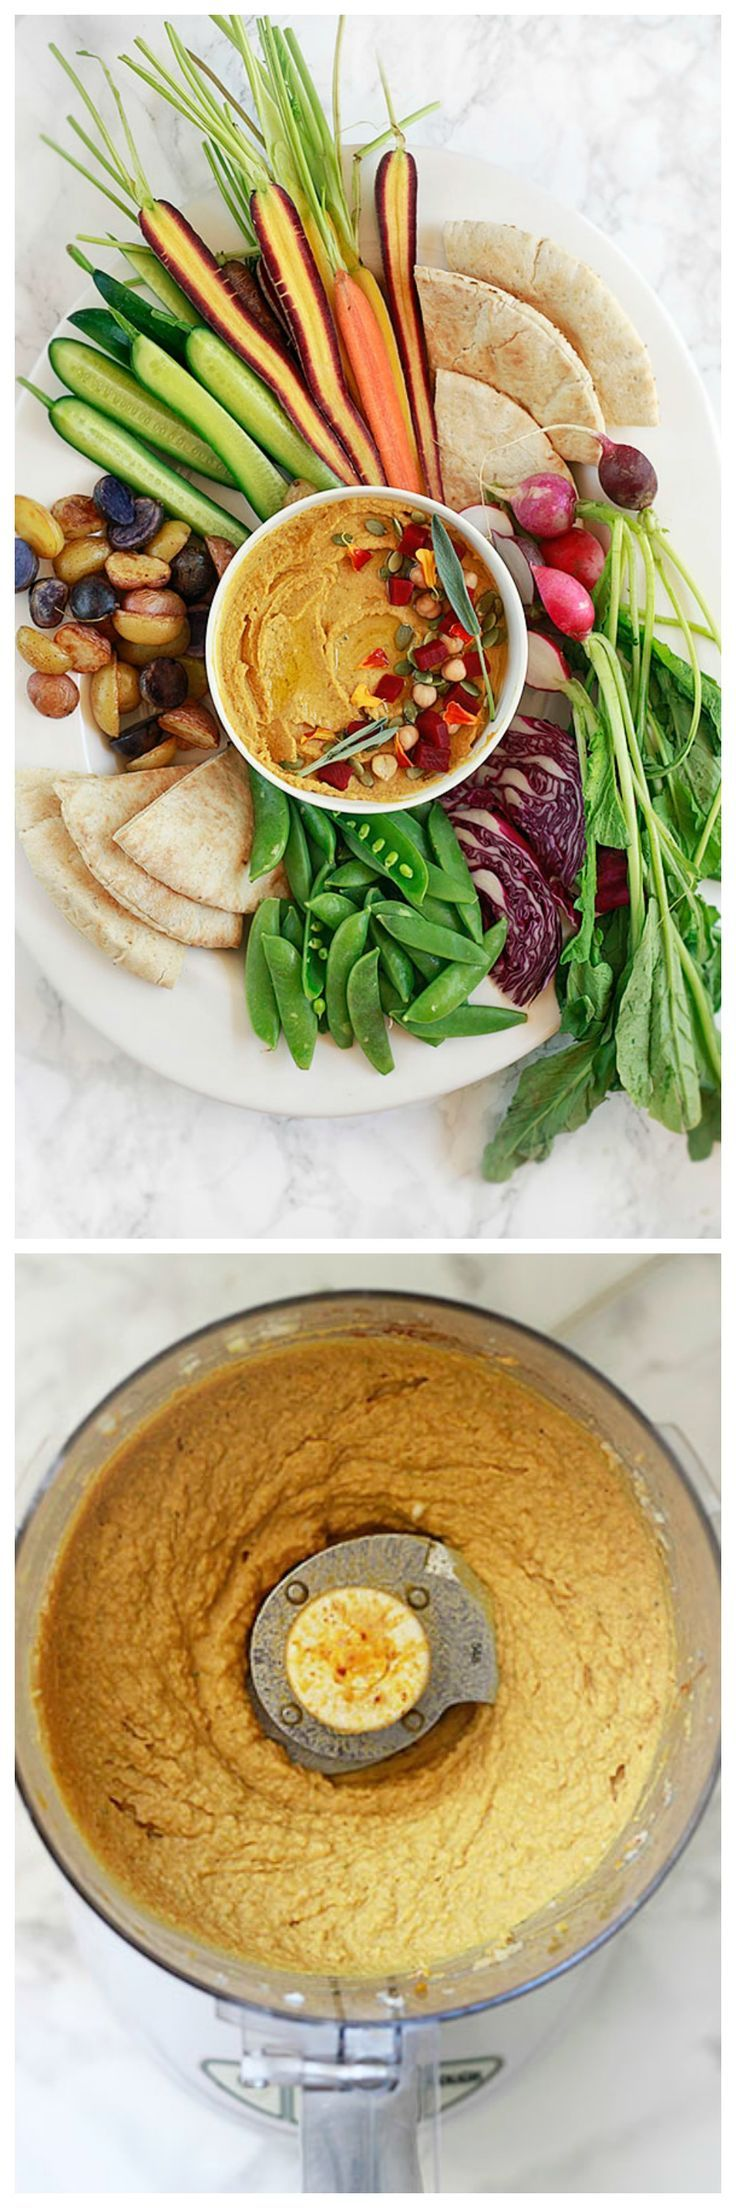 Pumpkin Hummus recipe perfect for a vegan Thanksgiving, fall appetizer with crudites, or sandwich spread.